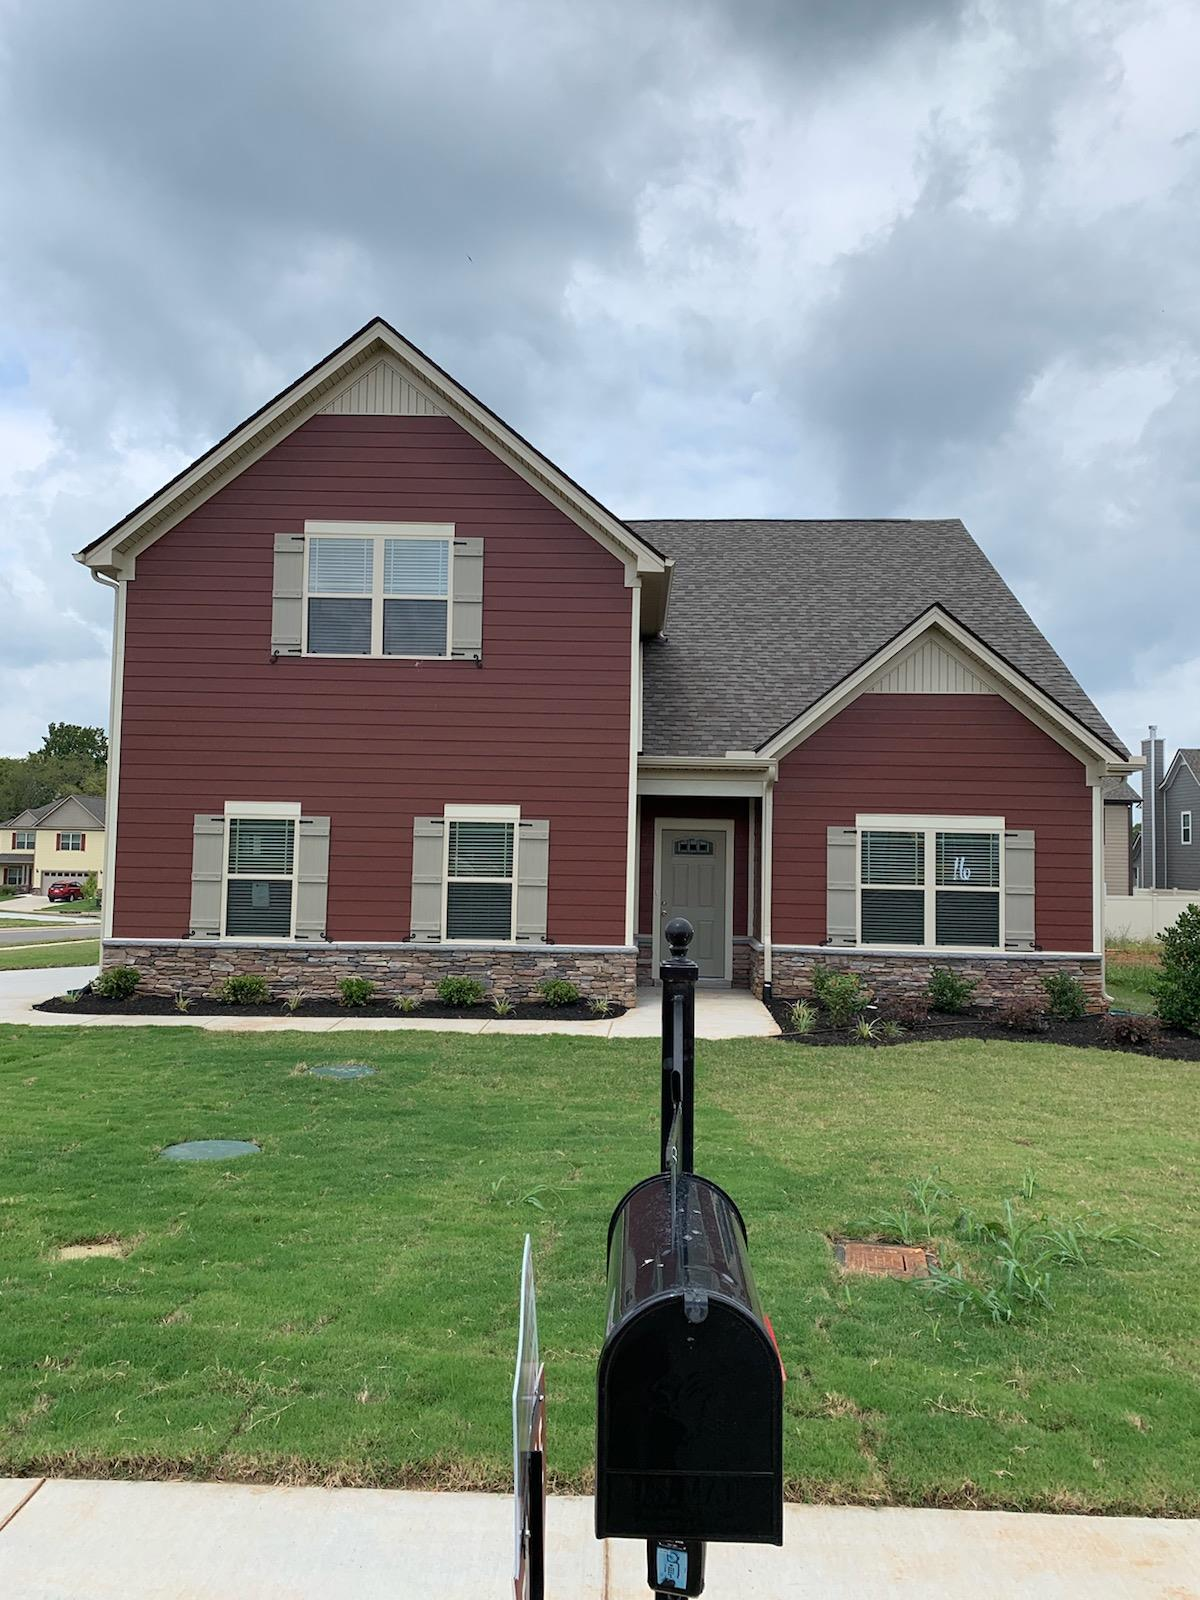 2317 Peach Blossom Ct. / Lot 16, Murfreesboro, Tennessee